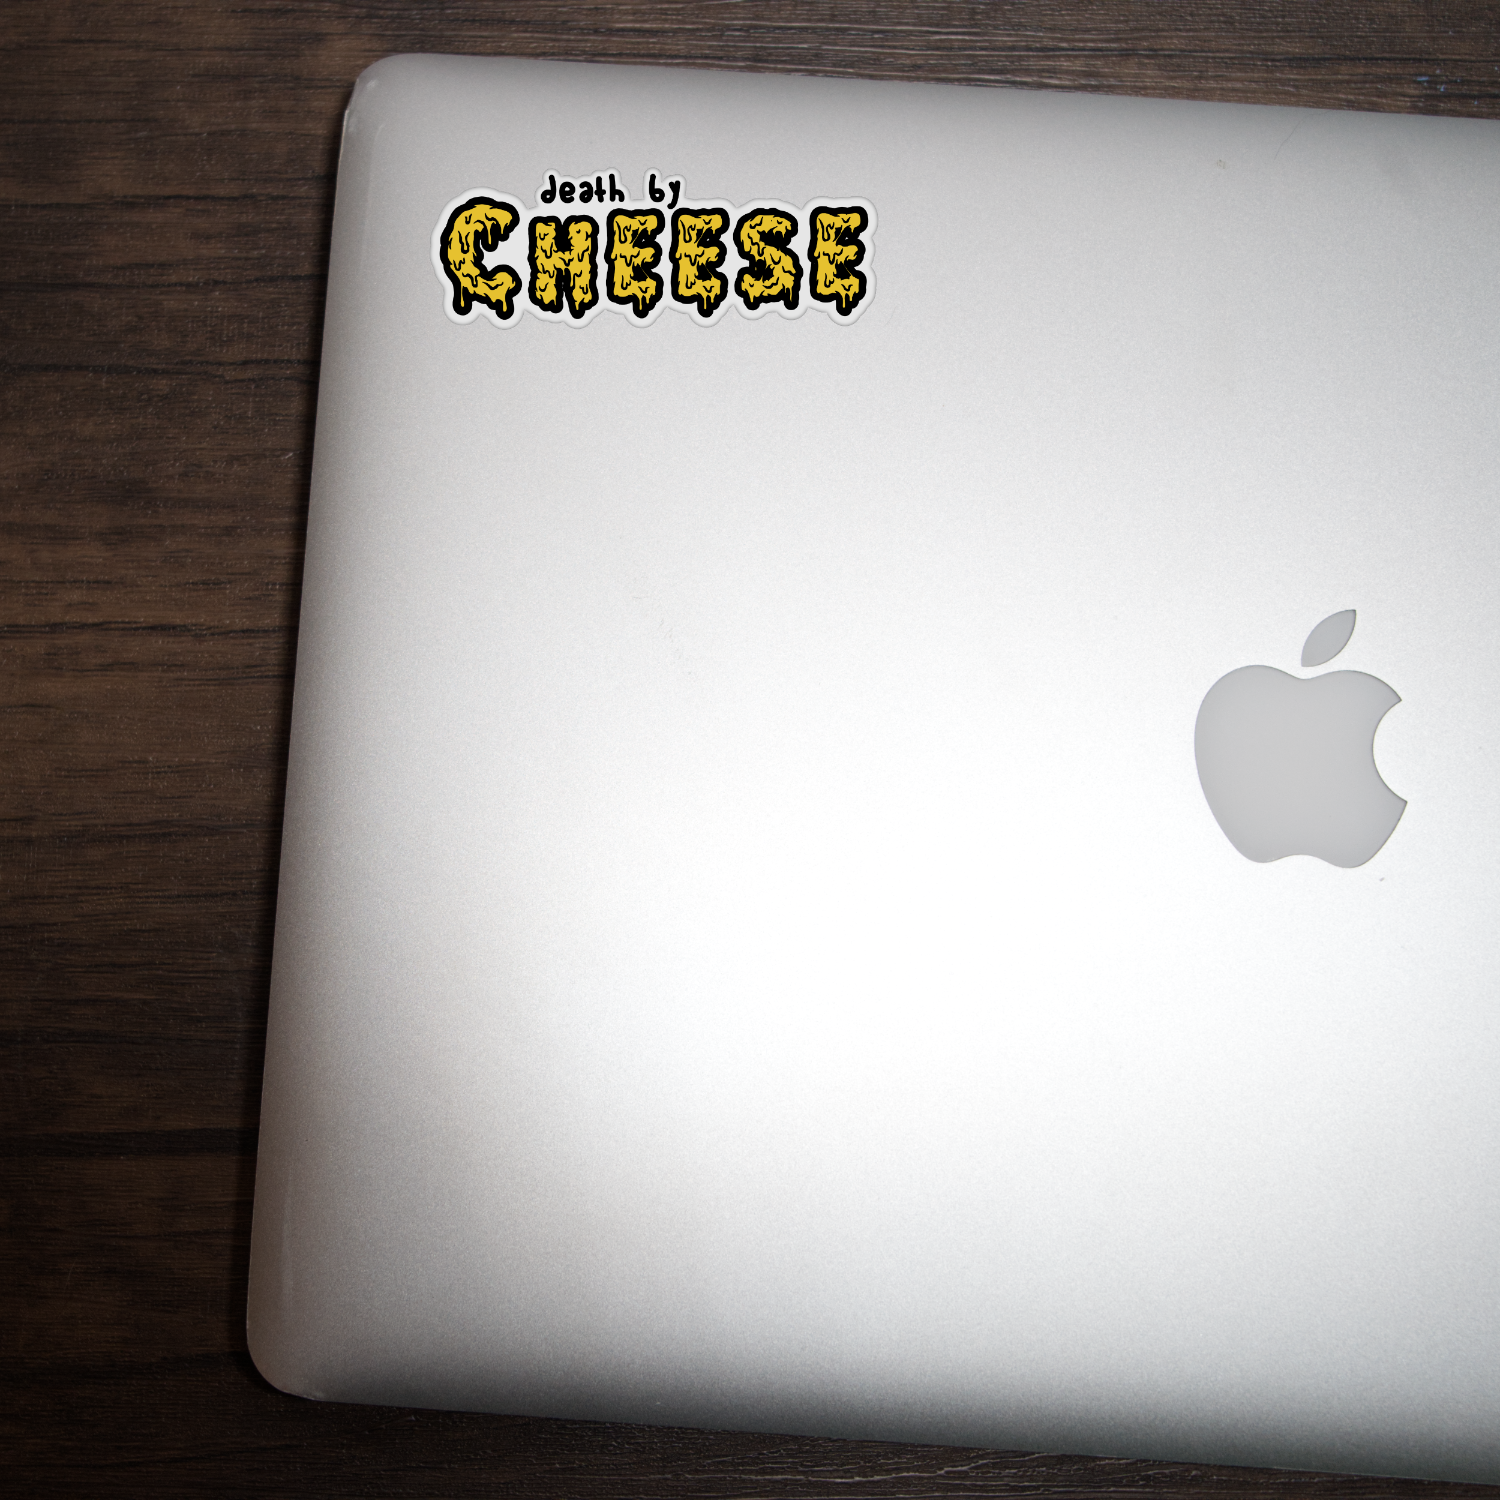 """Macbook with a vinyl sticker that says """"death by cheese"""" on it"""